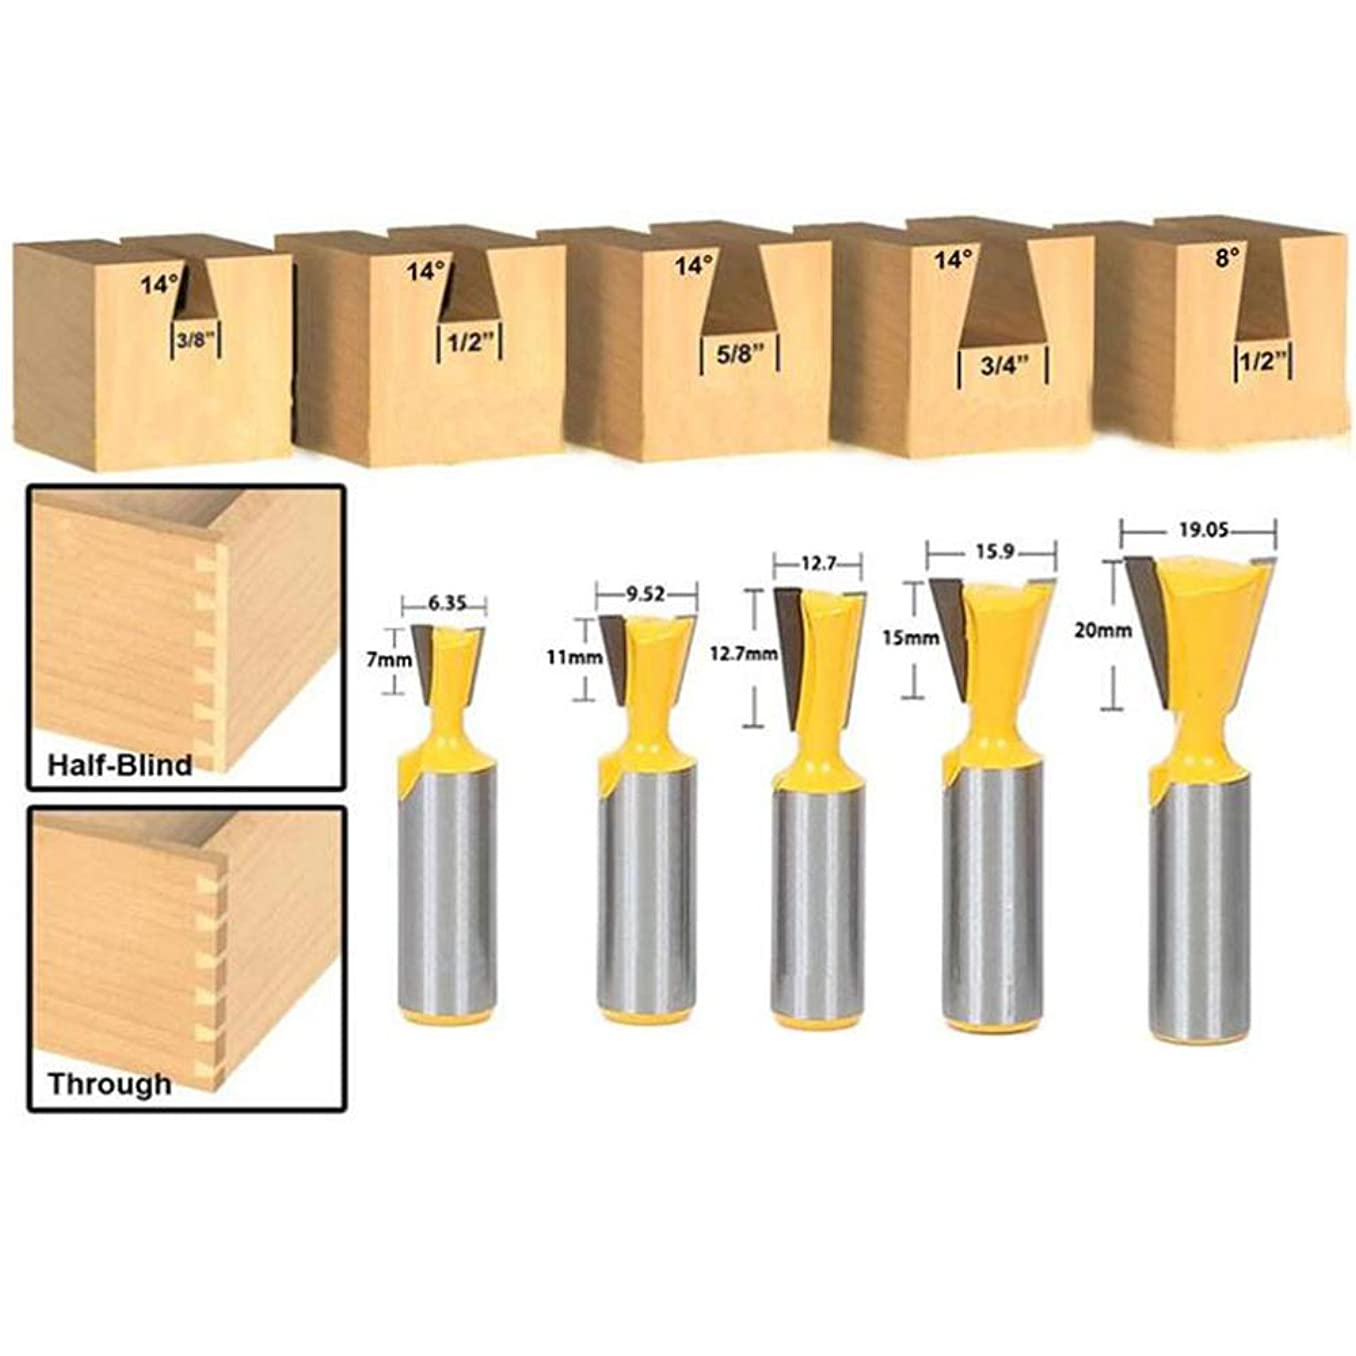 LETB Dovetail Router Bit Set 1/2 Inch Shank 5 PCS, Carbide Dovetail Bits Cutting Diameter 1/4